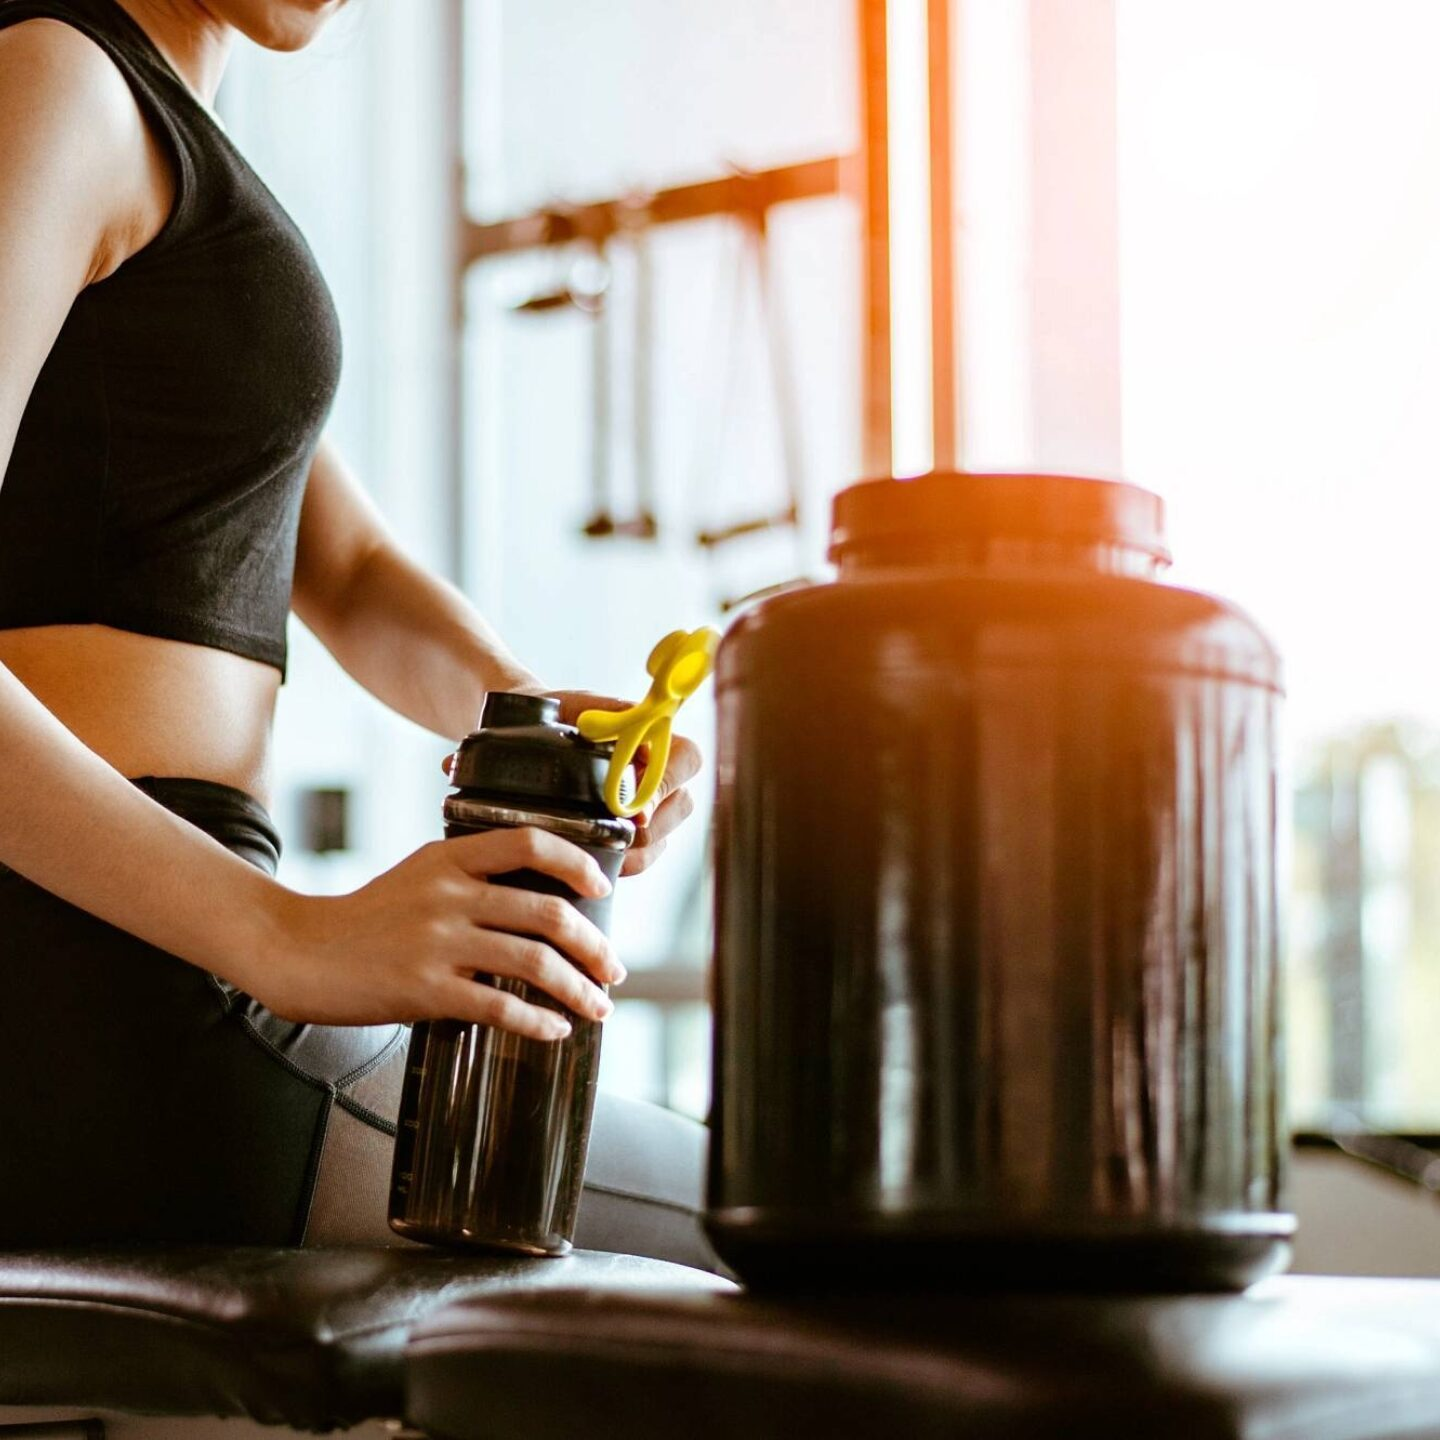 Woman at gym drinking protein water from bottle - Beware of Heavy Metals present in Sports Supplements | NSF International